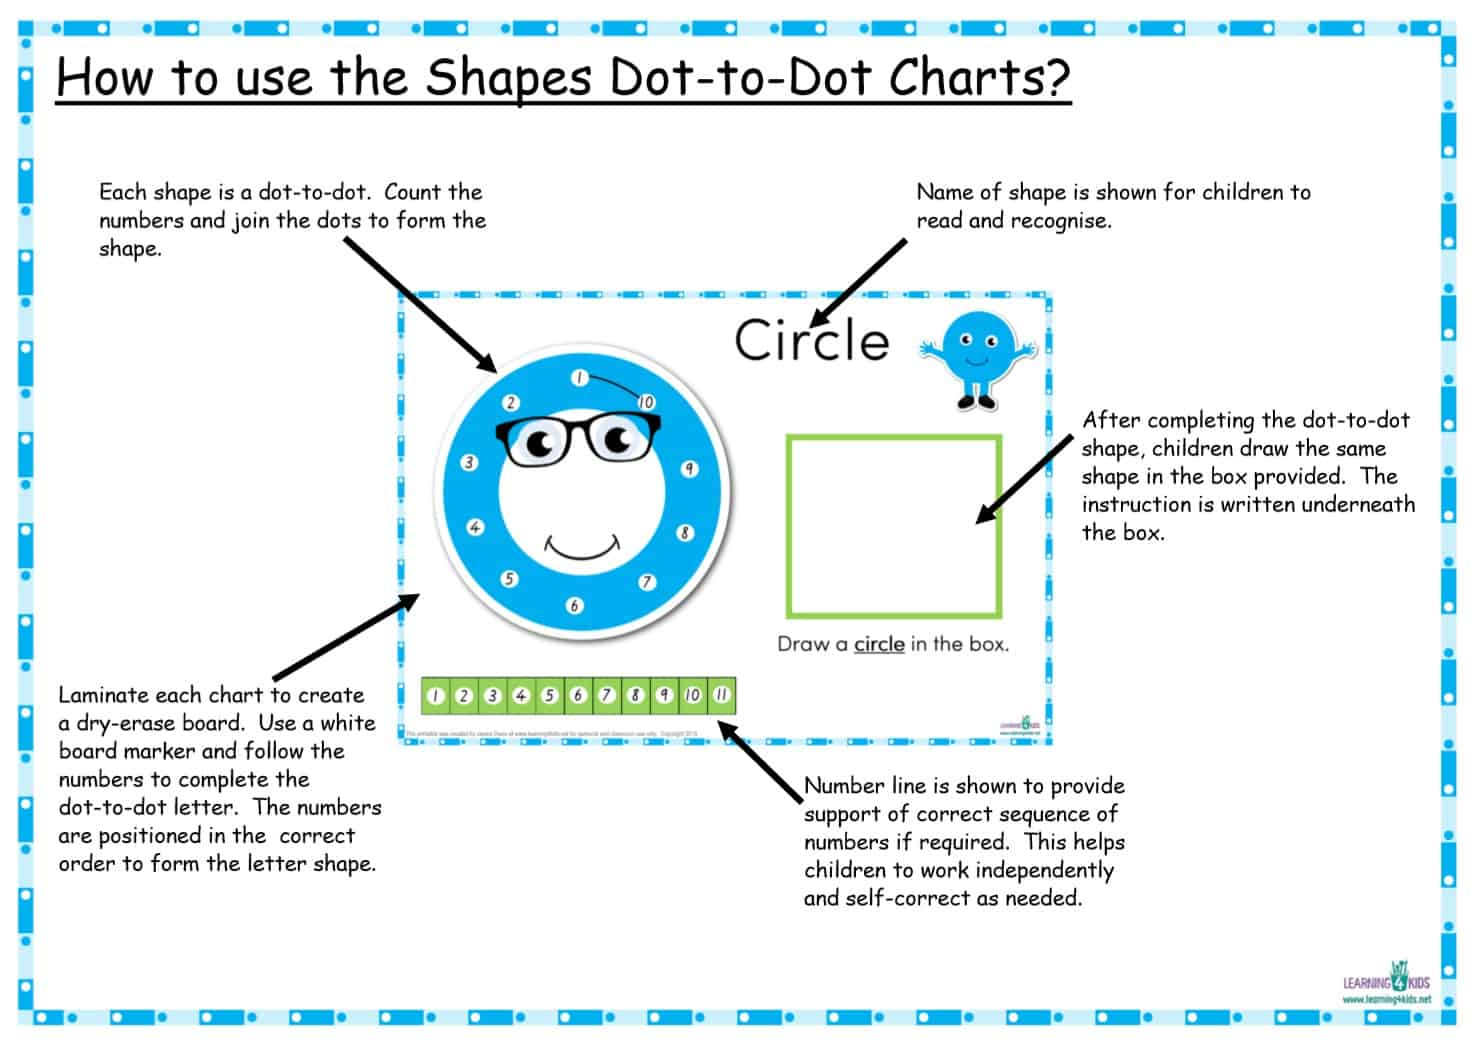 how to use the shapes dot-to-dot charts